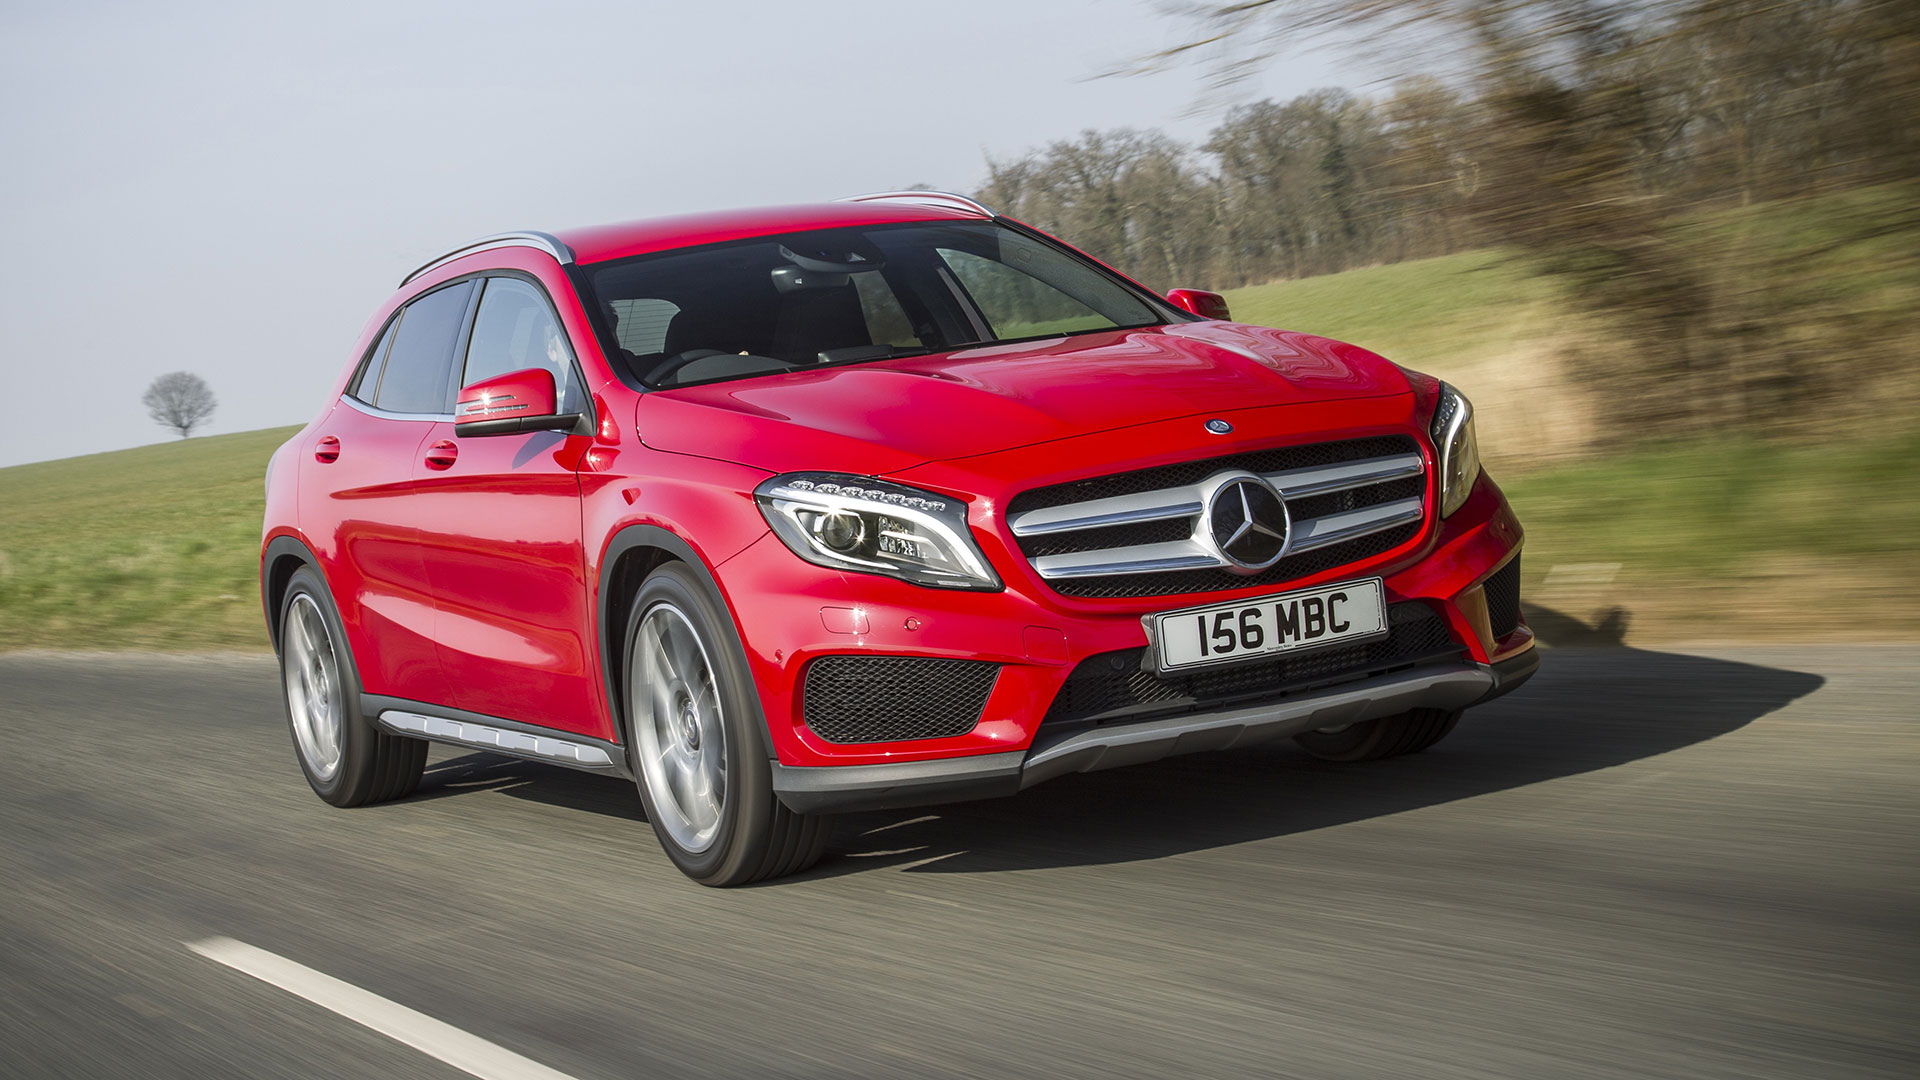 Used mercedes benz gla class cars for sale on auto trader uk for Used mercedes benz cars for sale